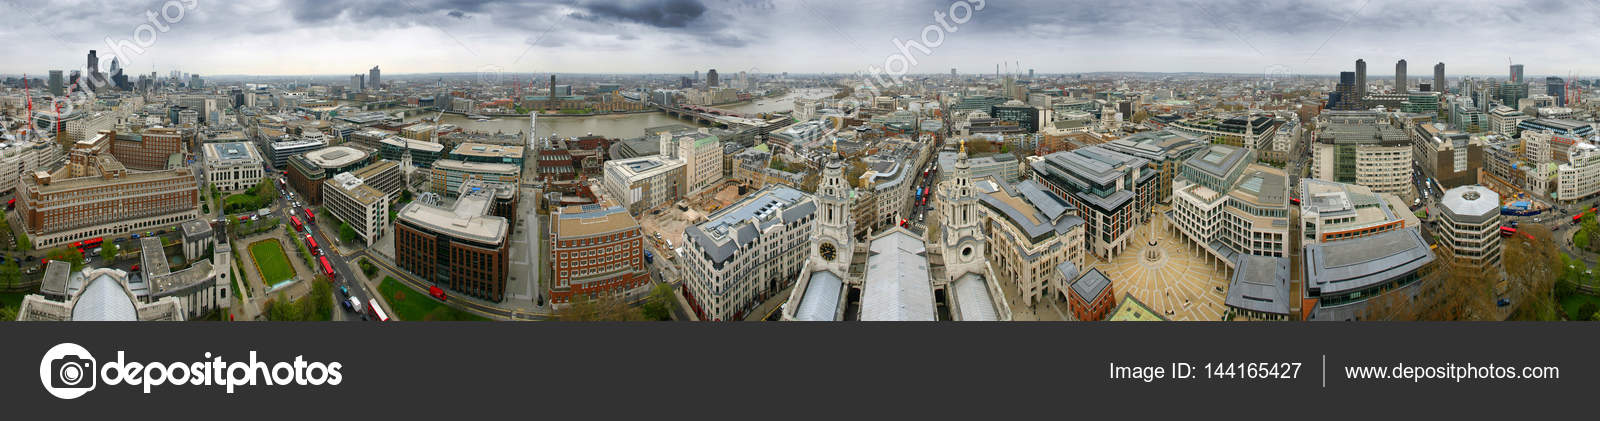 Panoramic View 360 Degree From Top Of St Pauls Cathedral In London